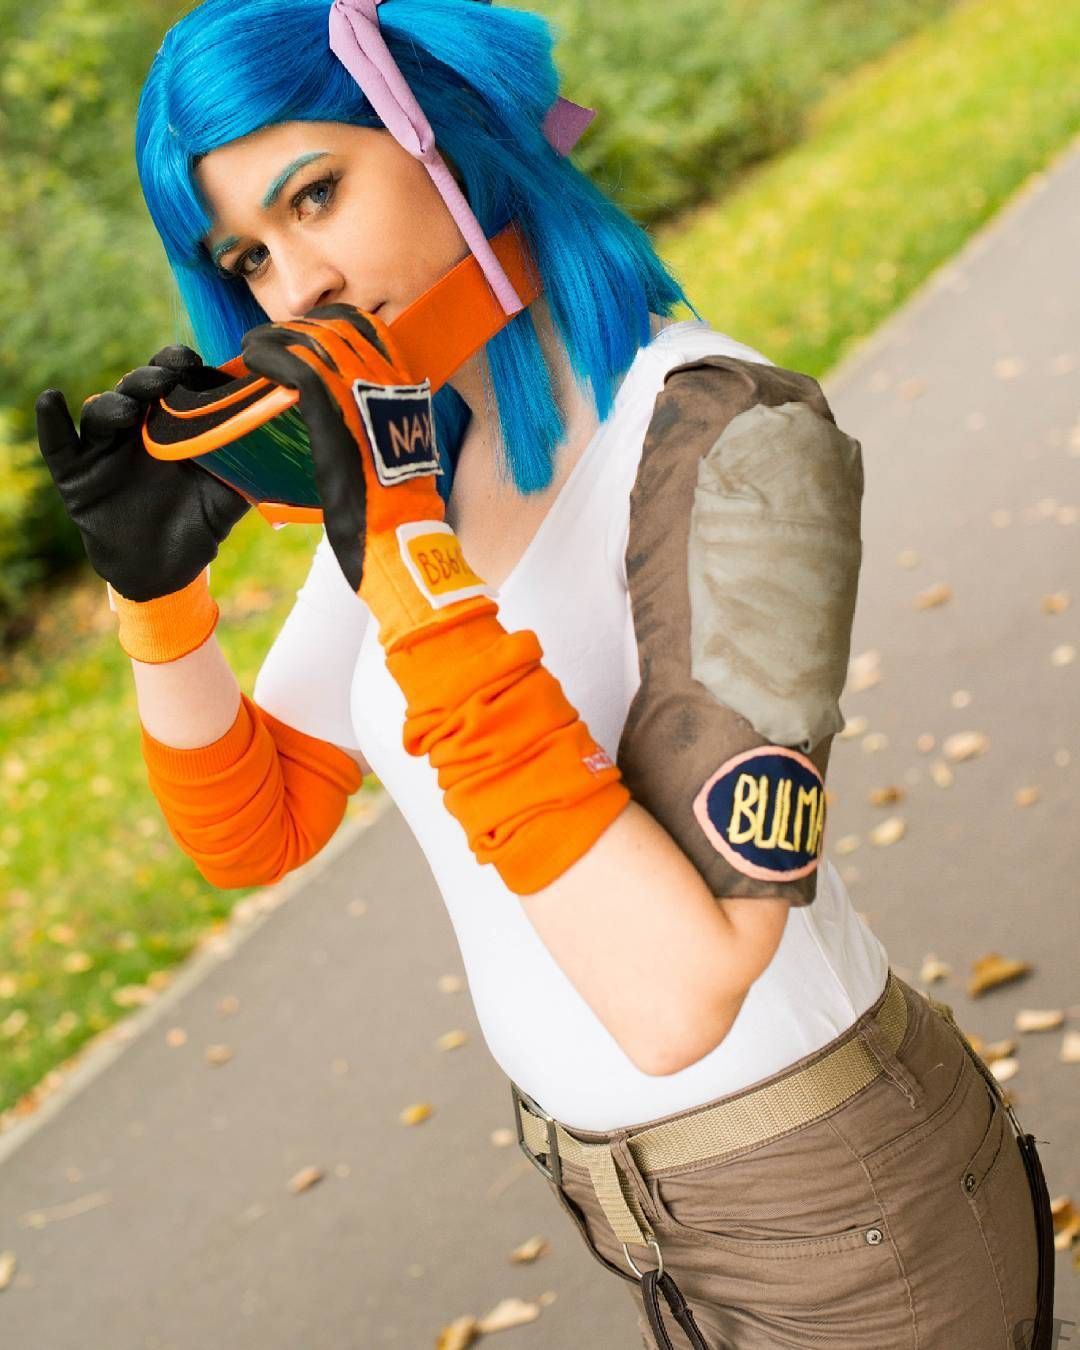 My profile picture  D  cosplay  dragonball  bulma  bulmabriefs  anime   manga by liasfae 983937906e54